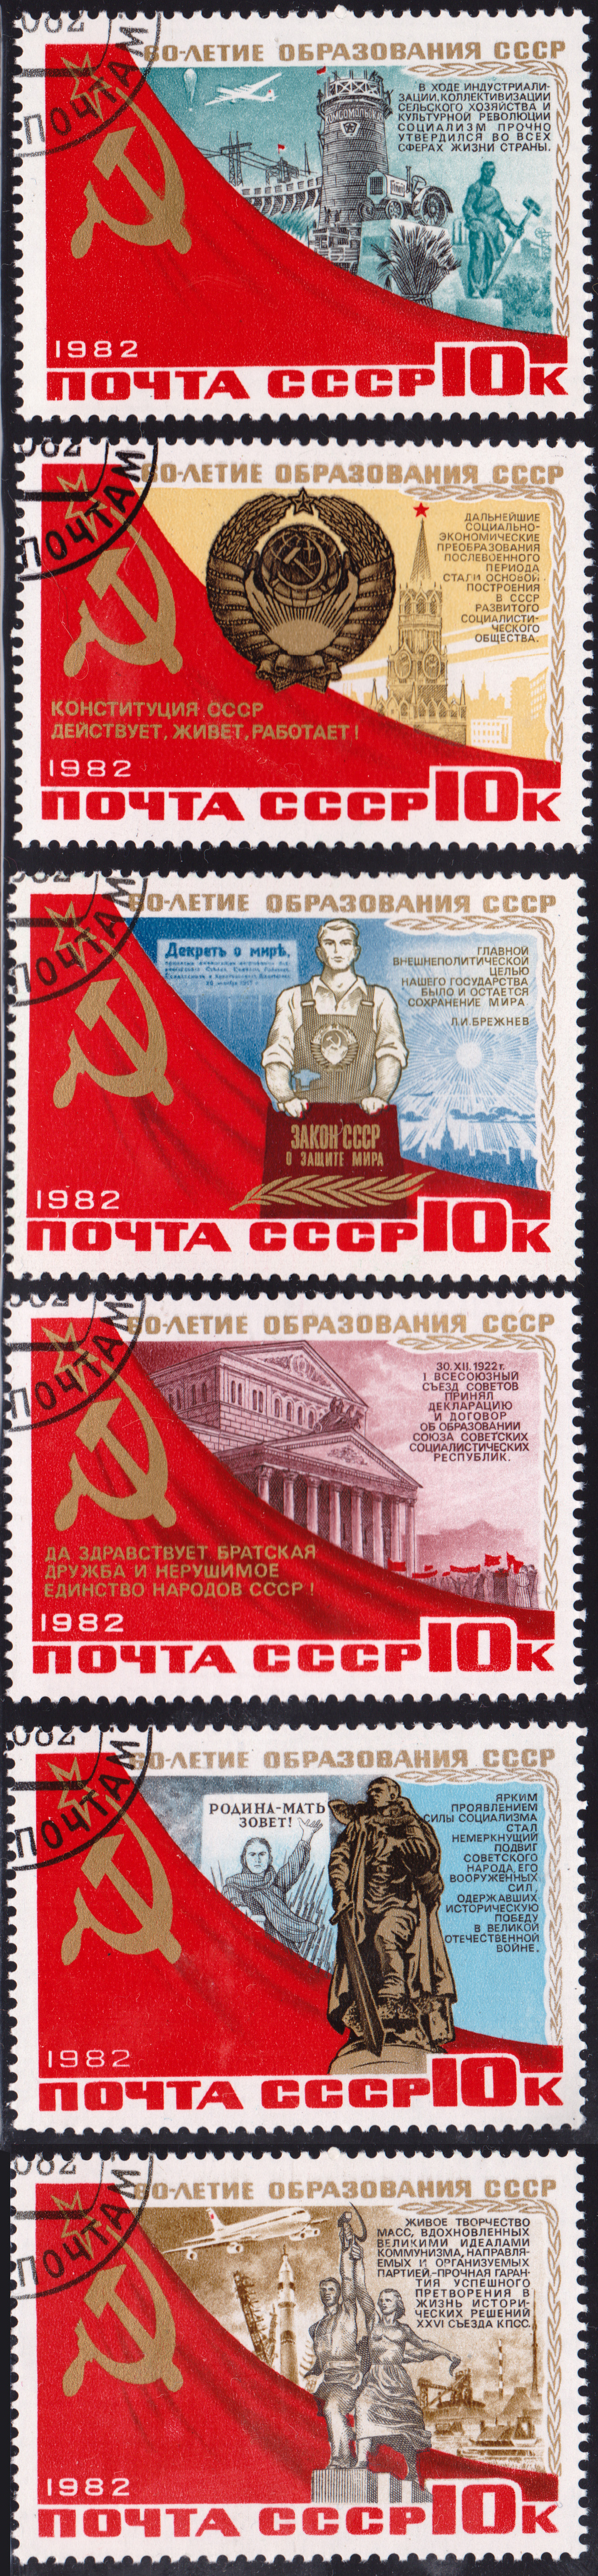 Vintage Cccp Stamps - Exploring Mars